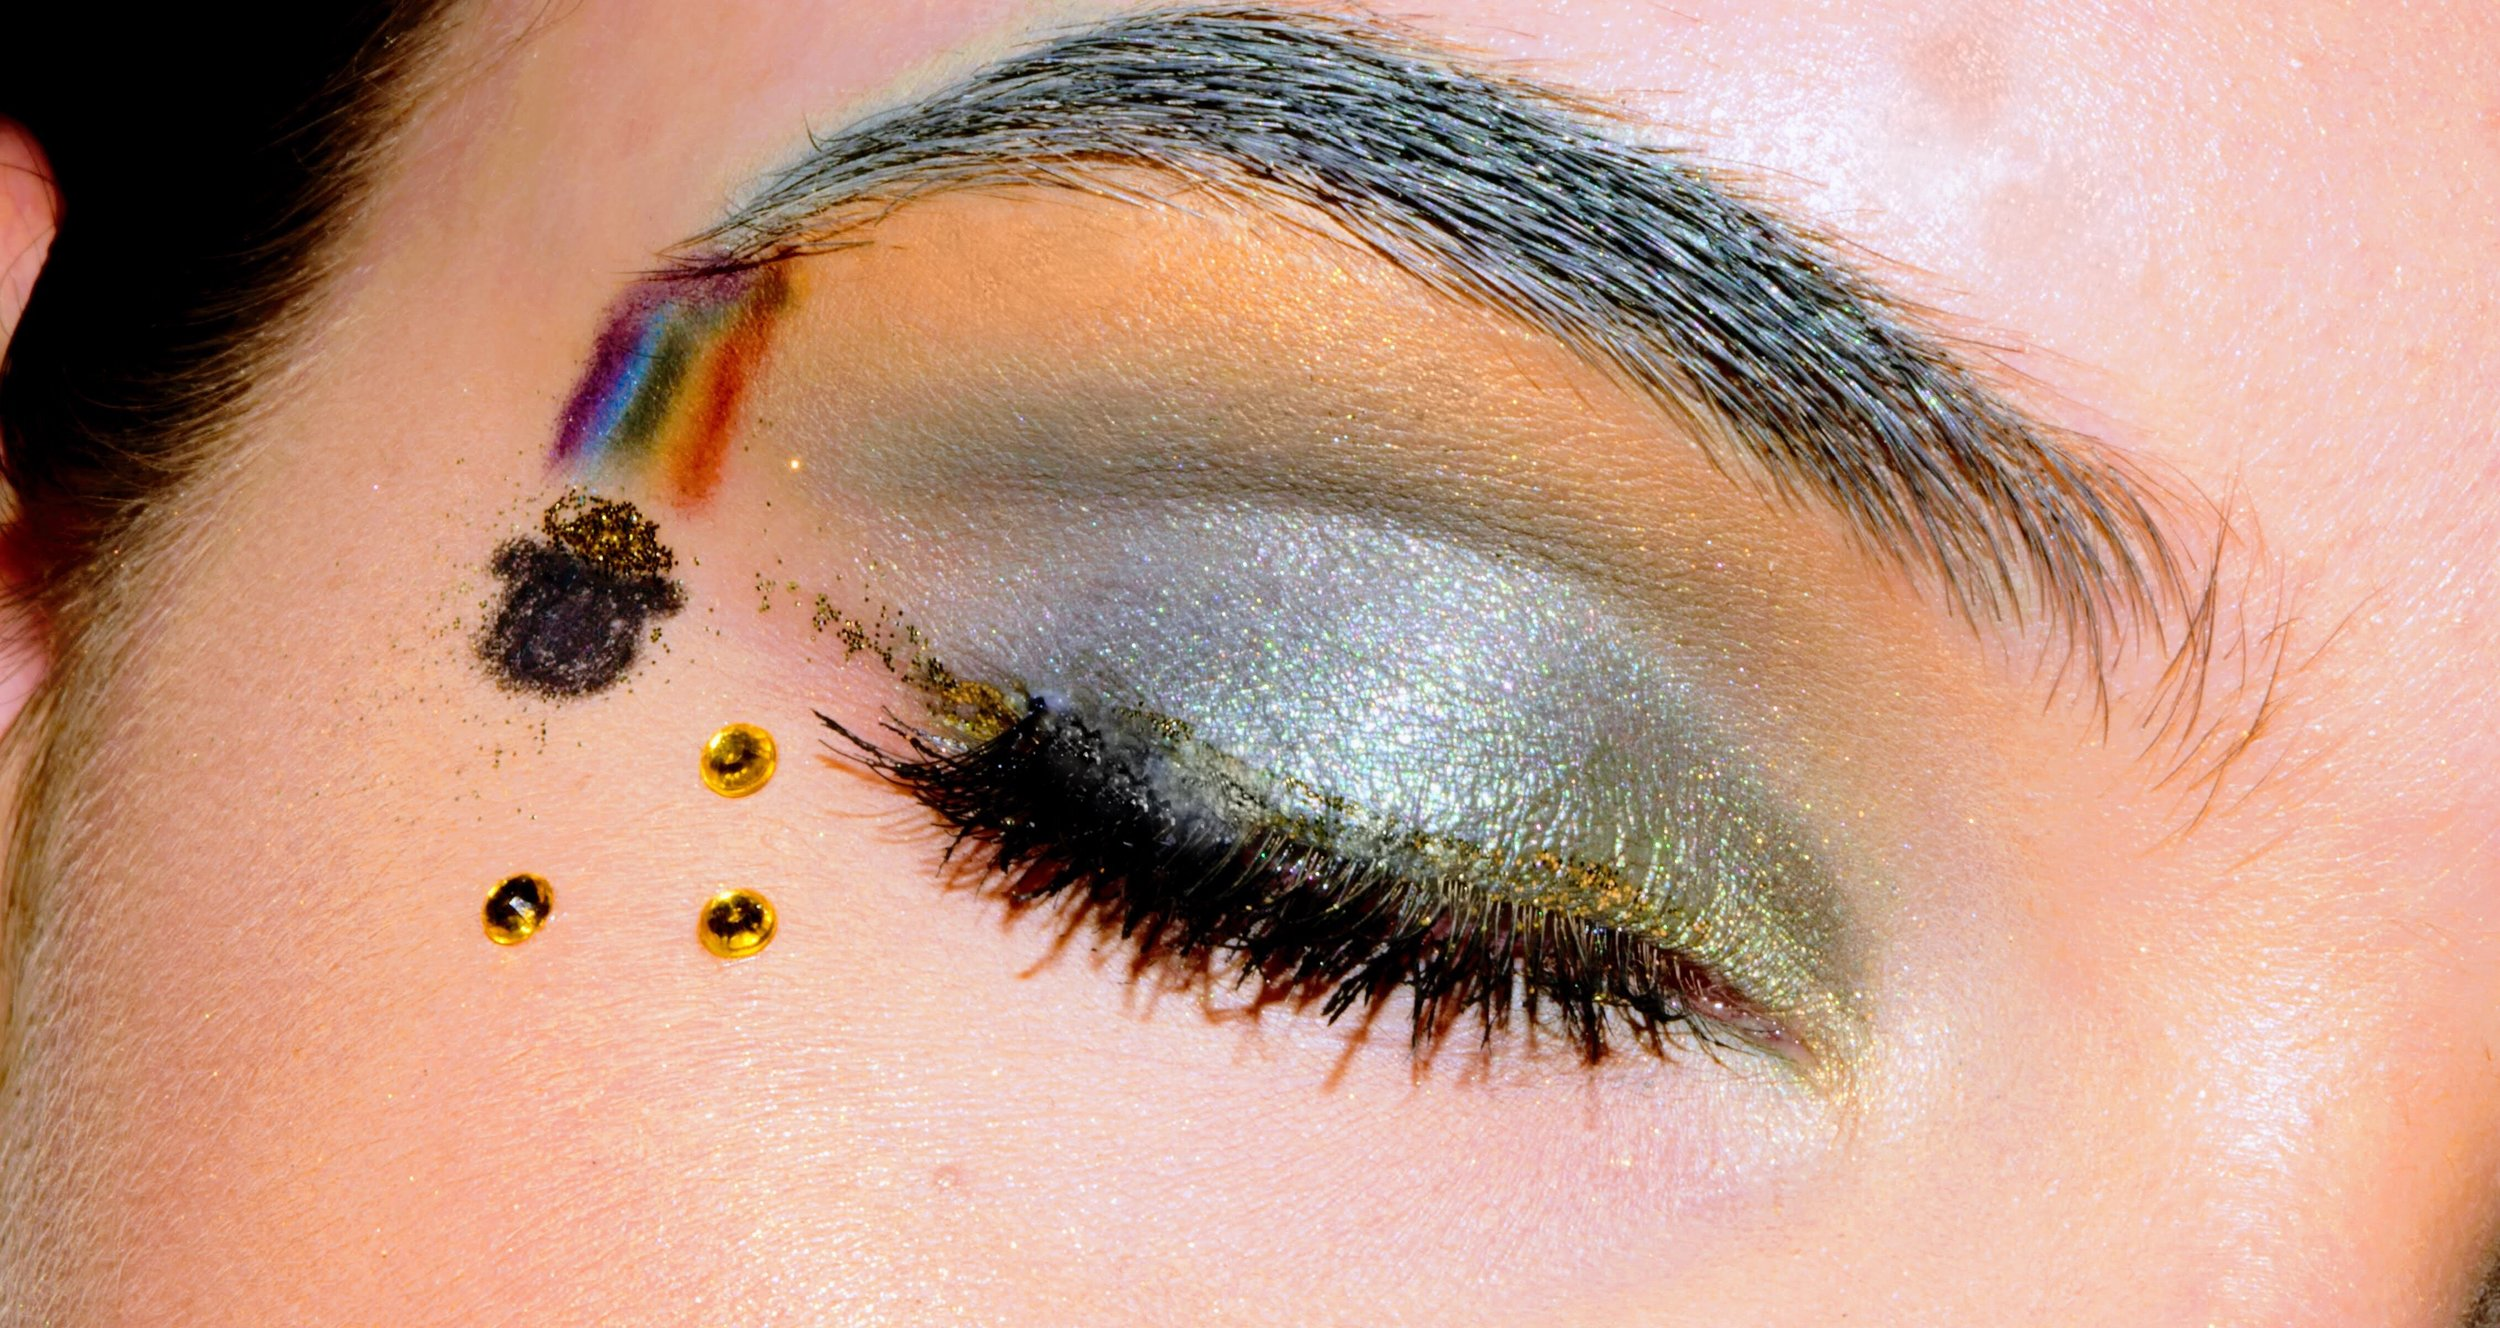 My sister did her St. Patrick's day makeup! Just look at that gorgeous rainbow and pot o' gold!